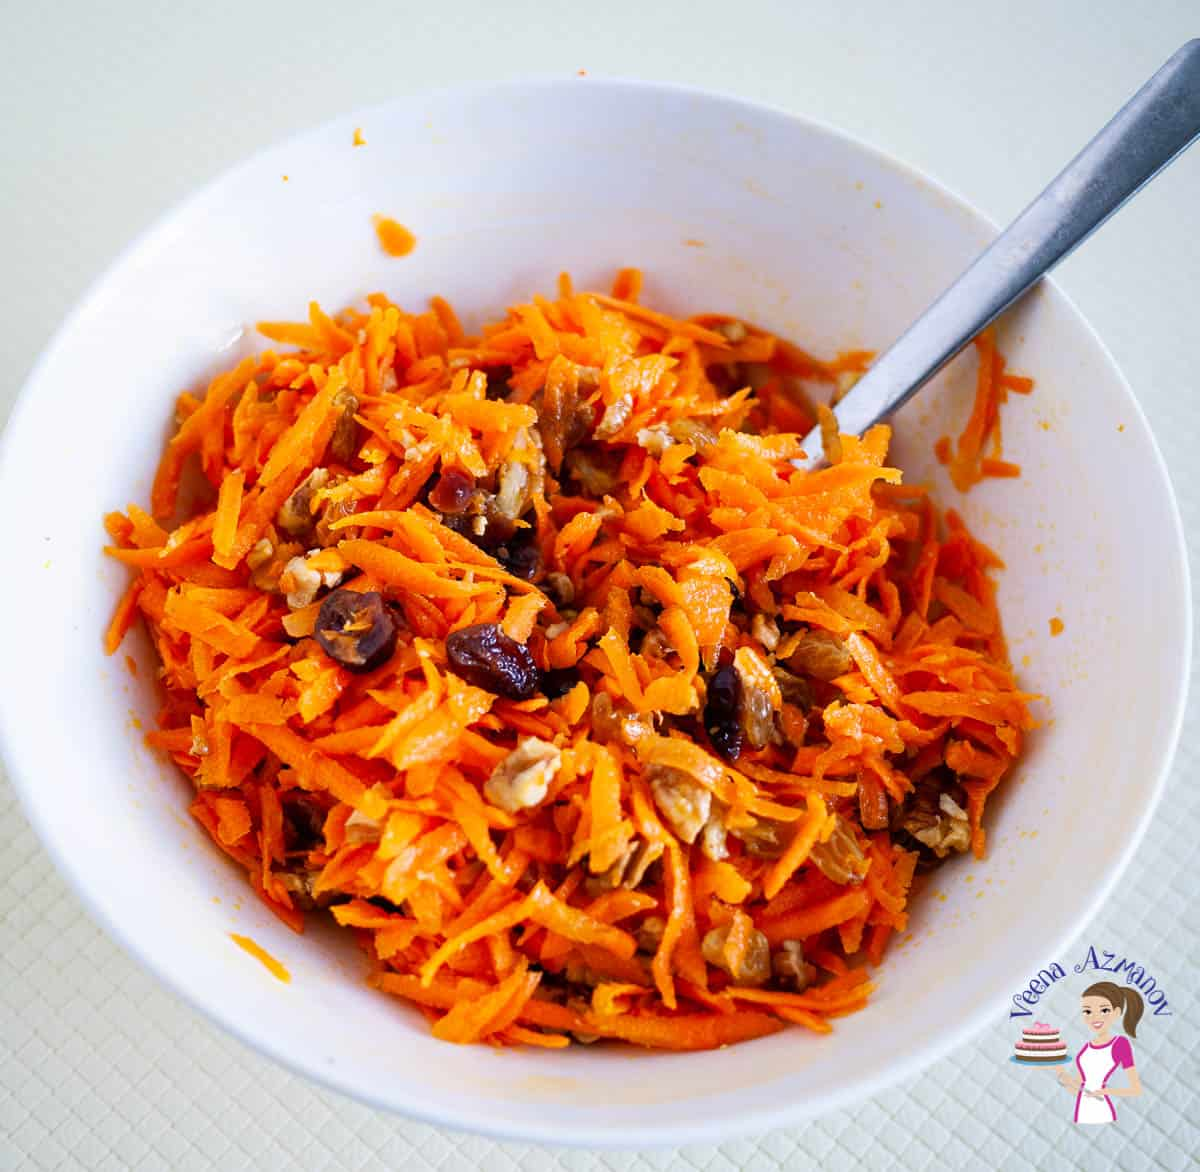 Carrot salad in a white bowl